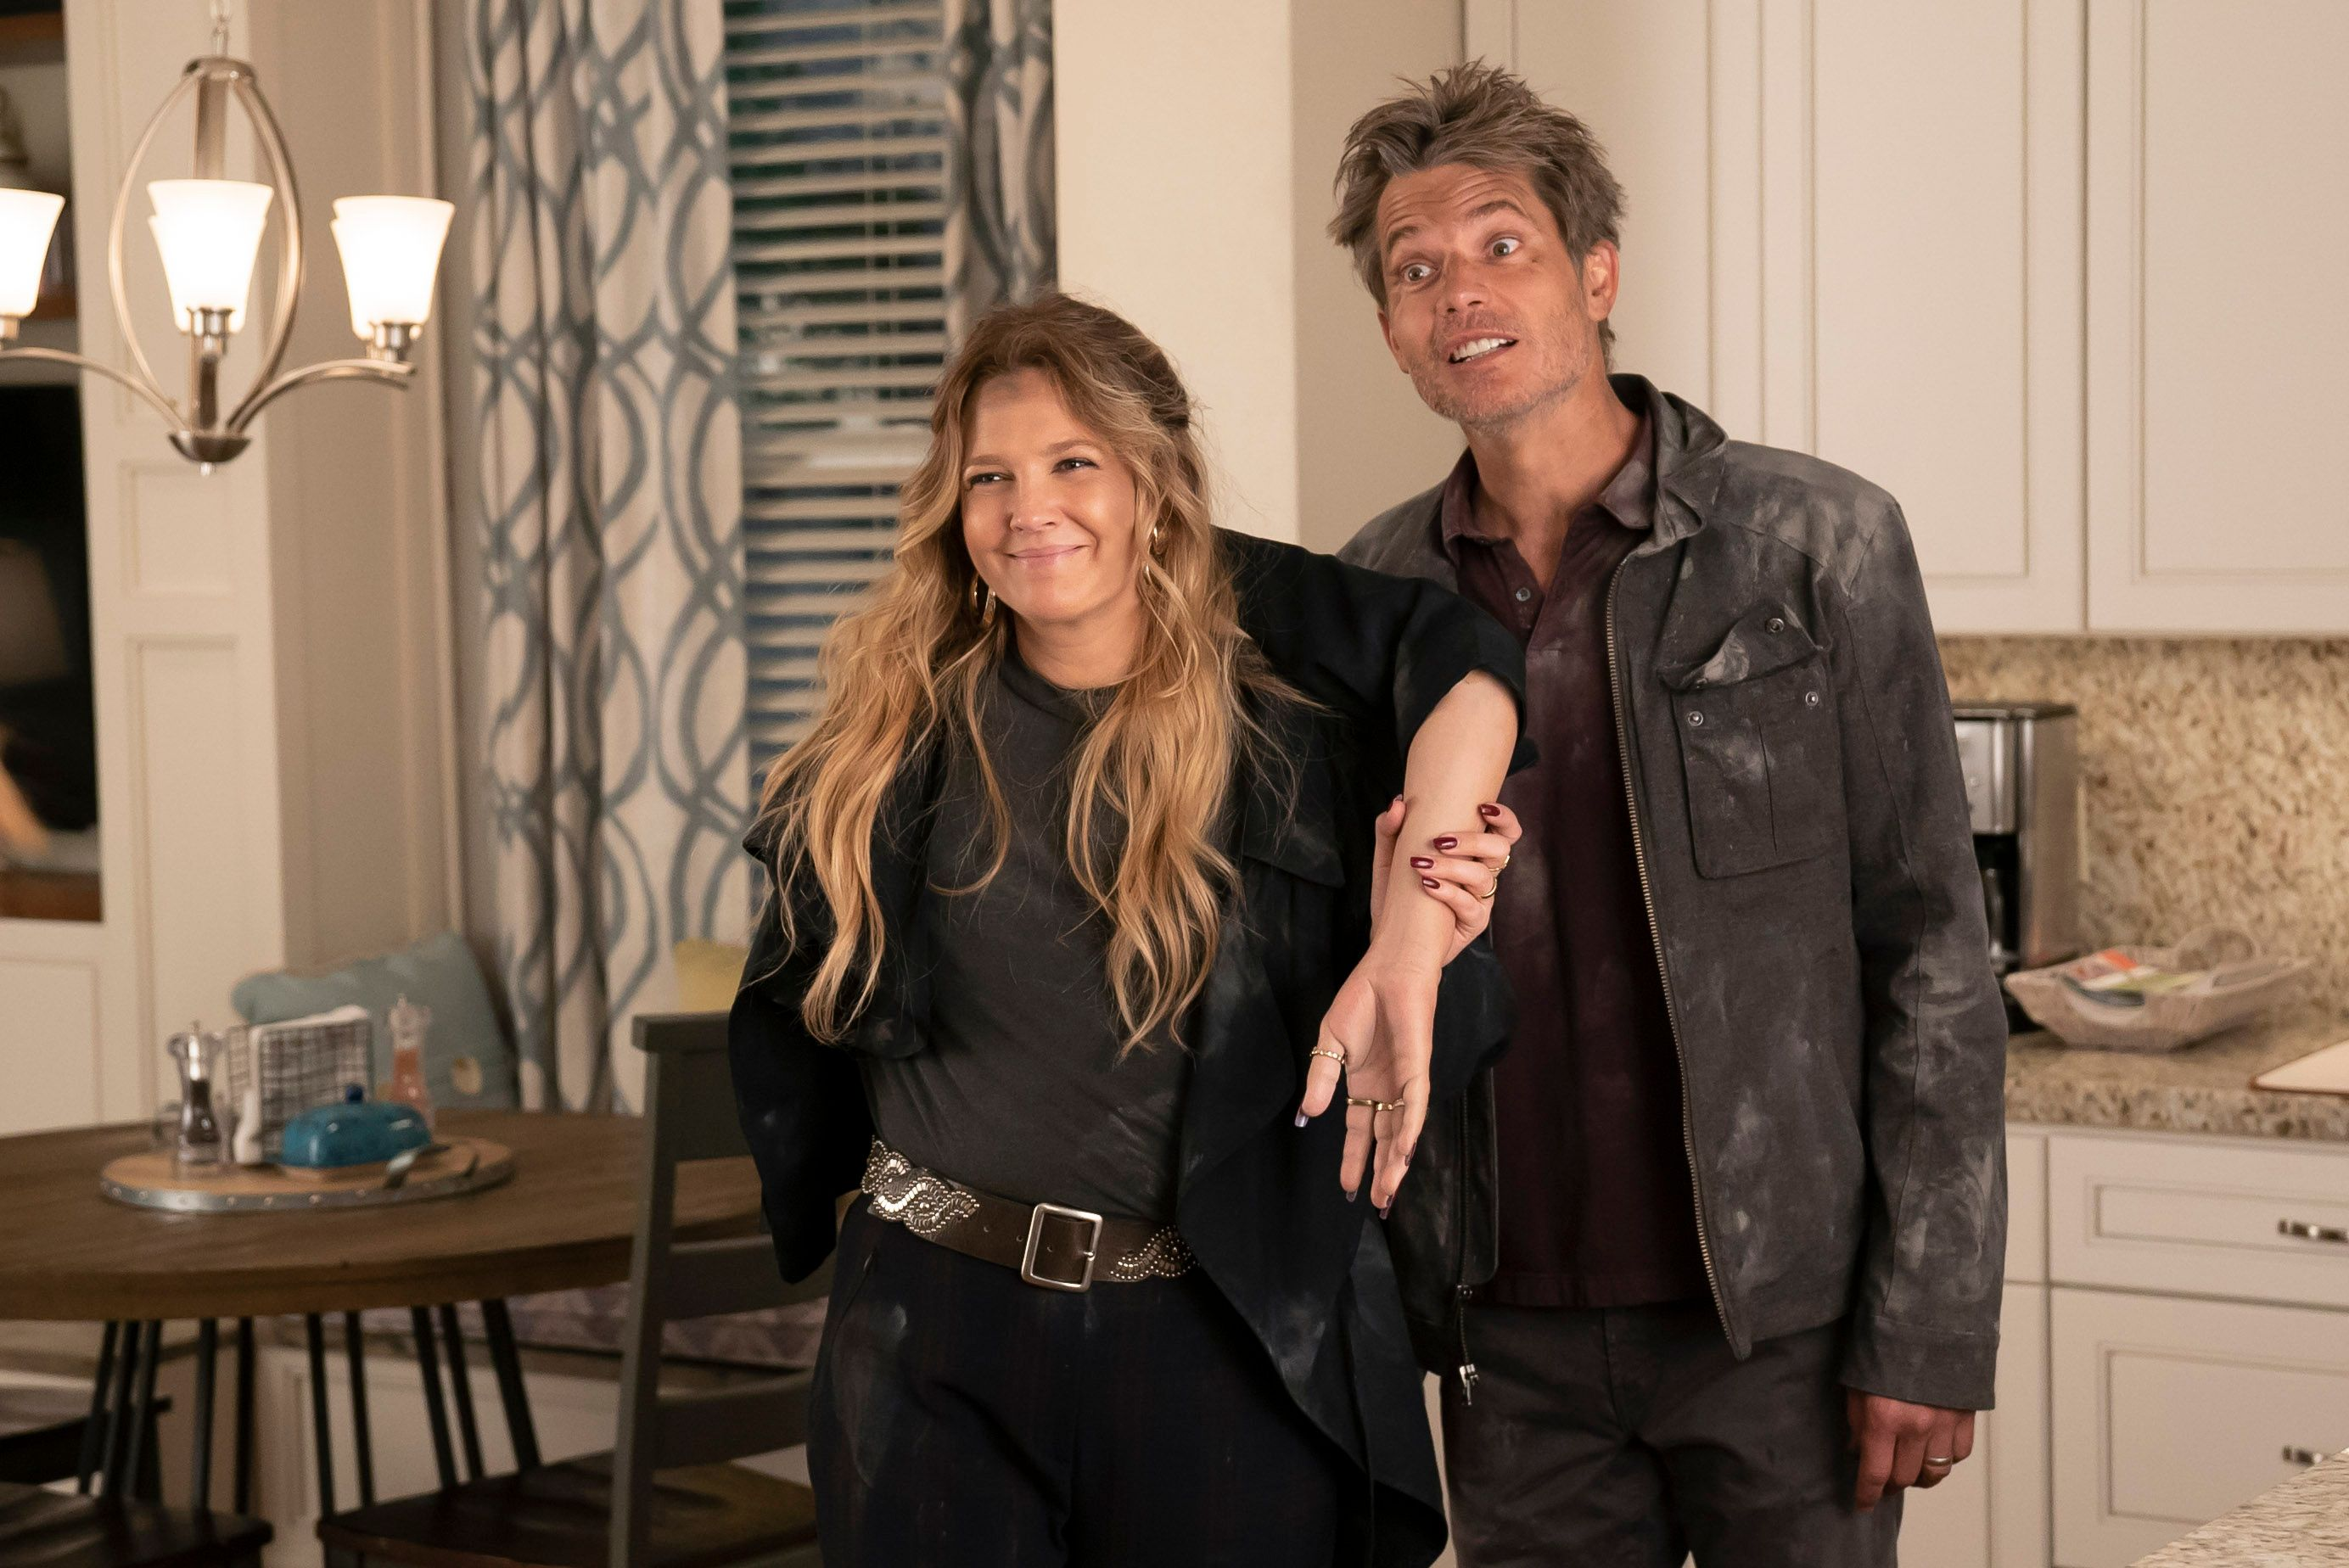 Santa Clarita Diet Season 3 Review: The Best Horror Comedy on TV | Collider